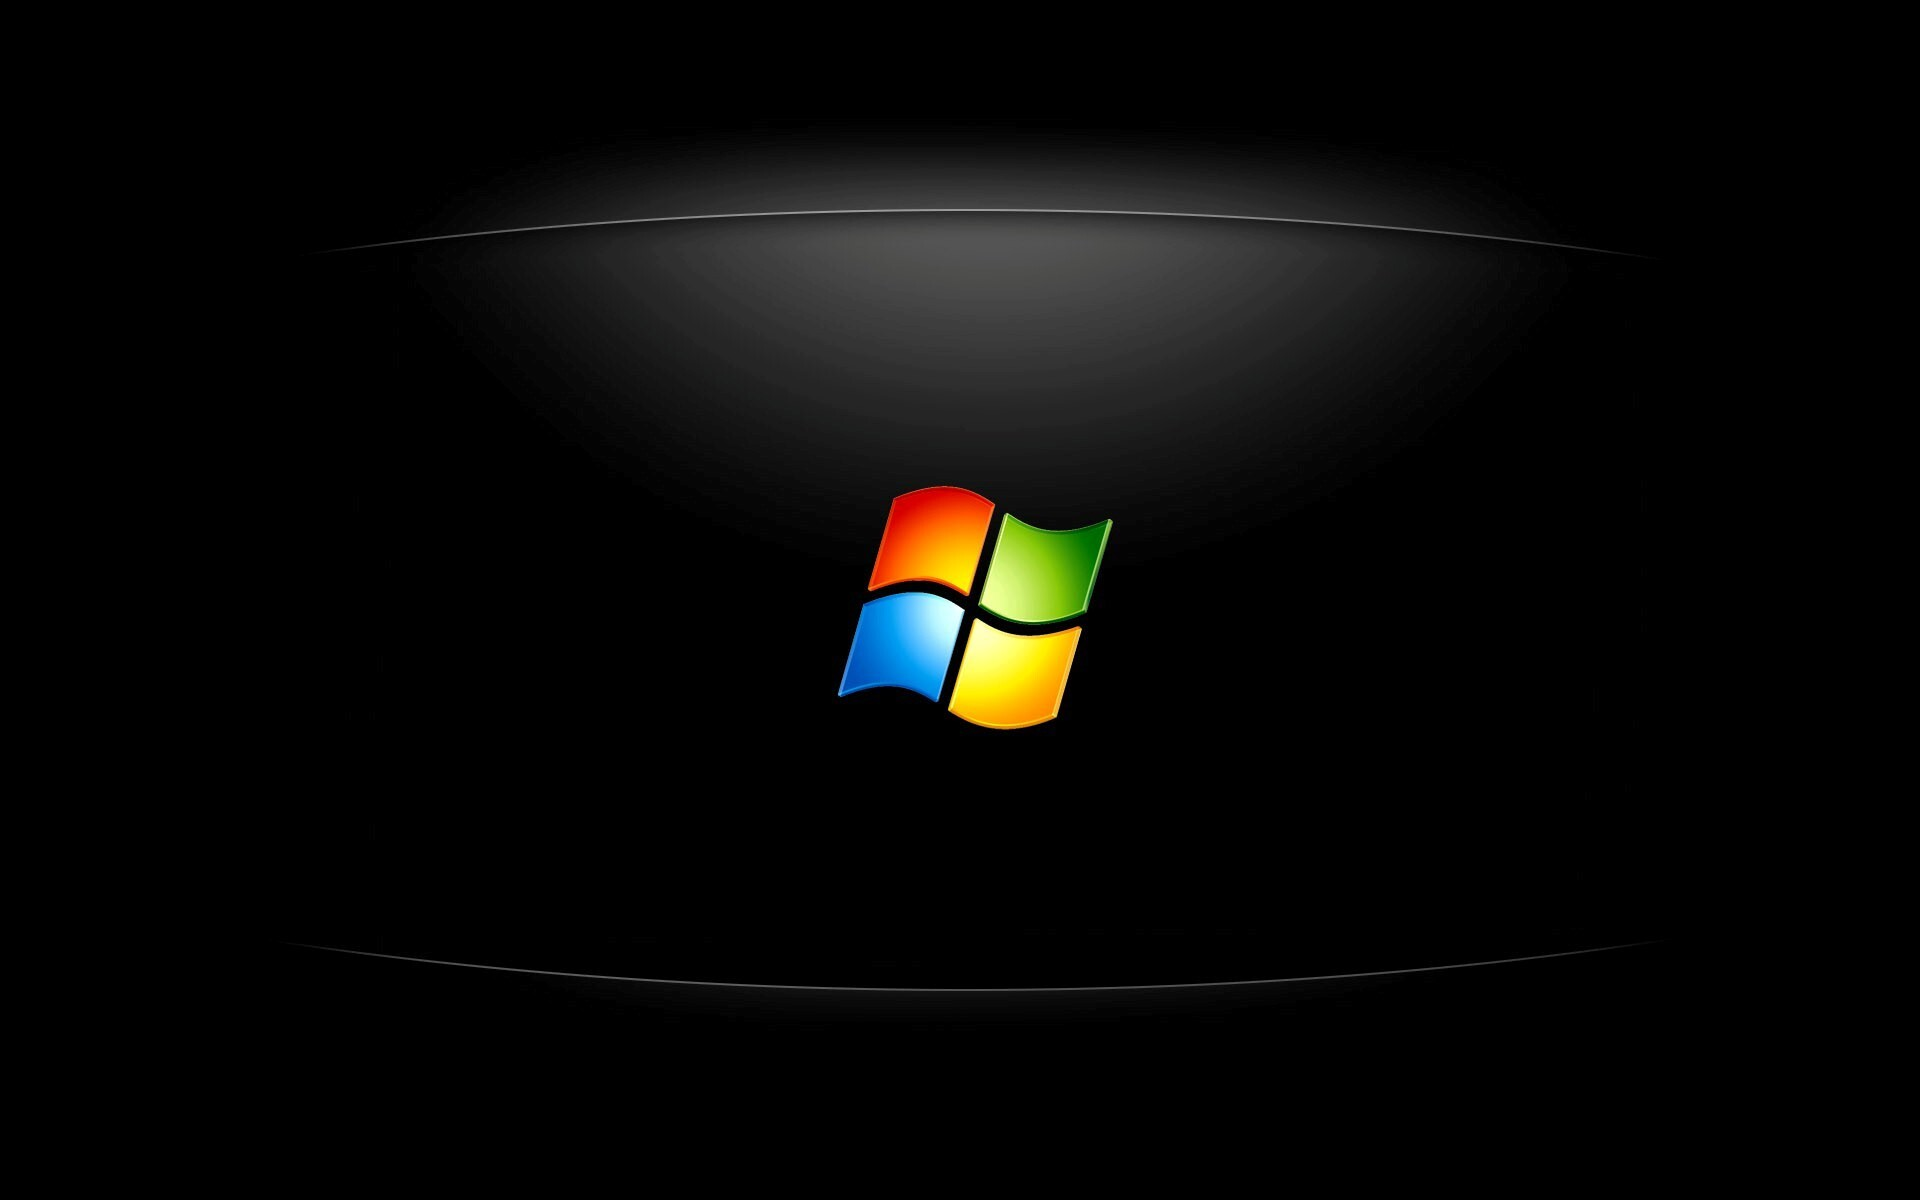 windows and linux wallpapers | free download hd new beautiful images